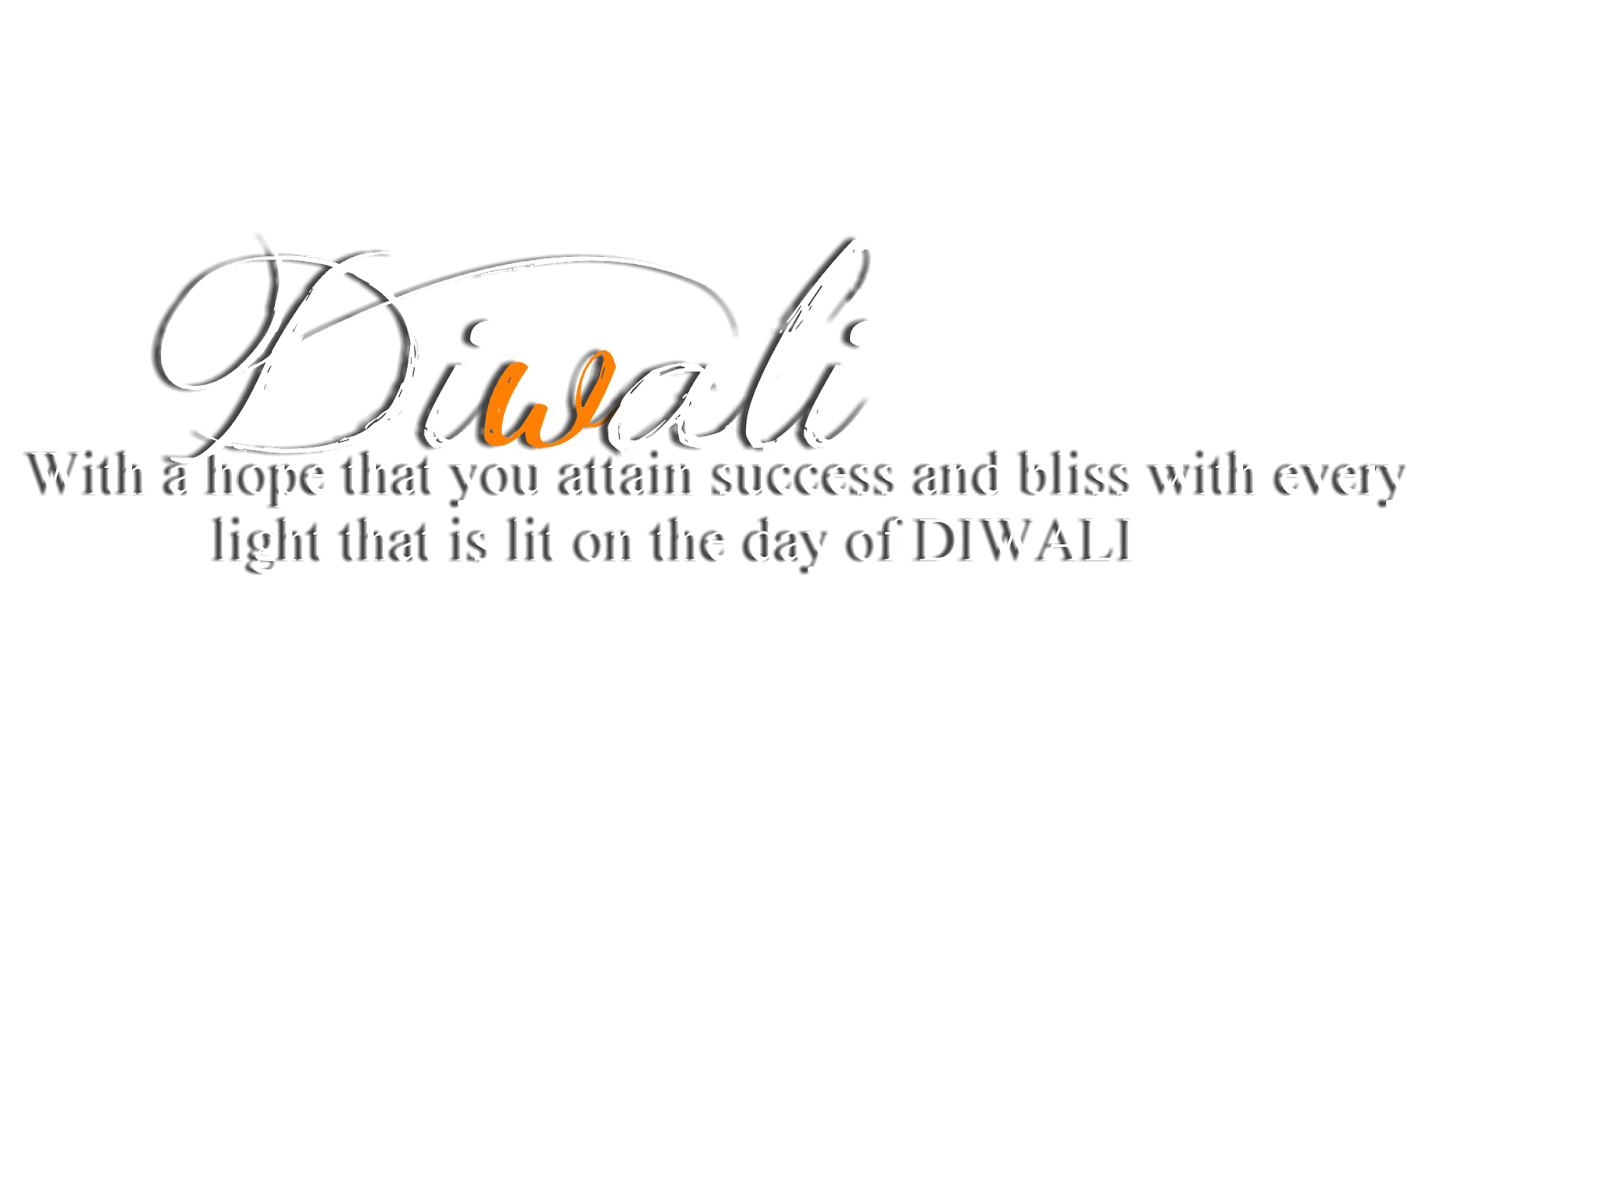 Png effects for editing 2016. Diwali effect download